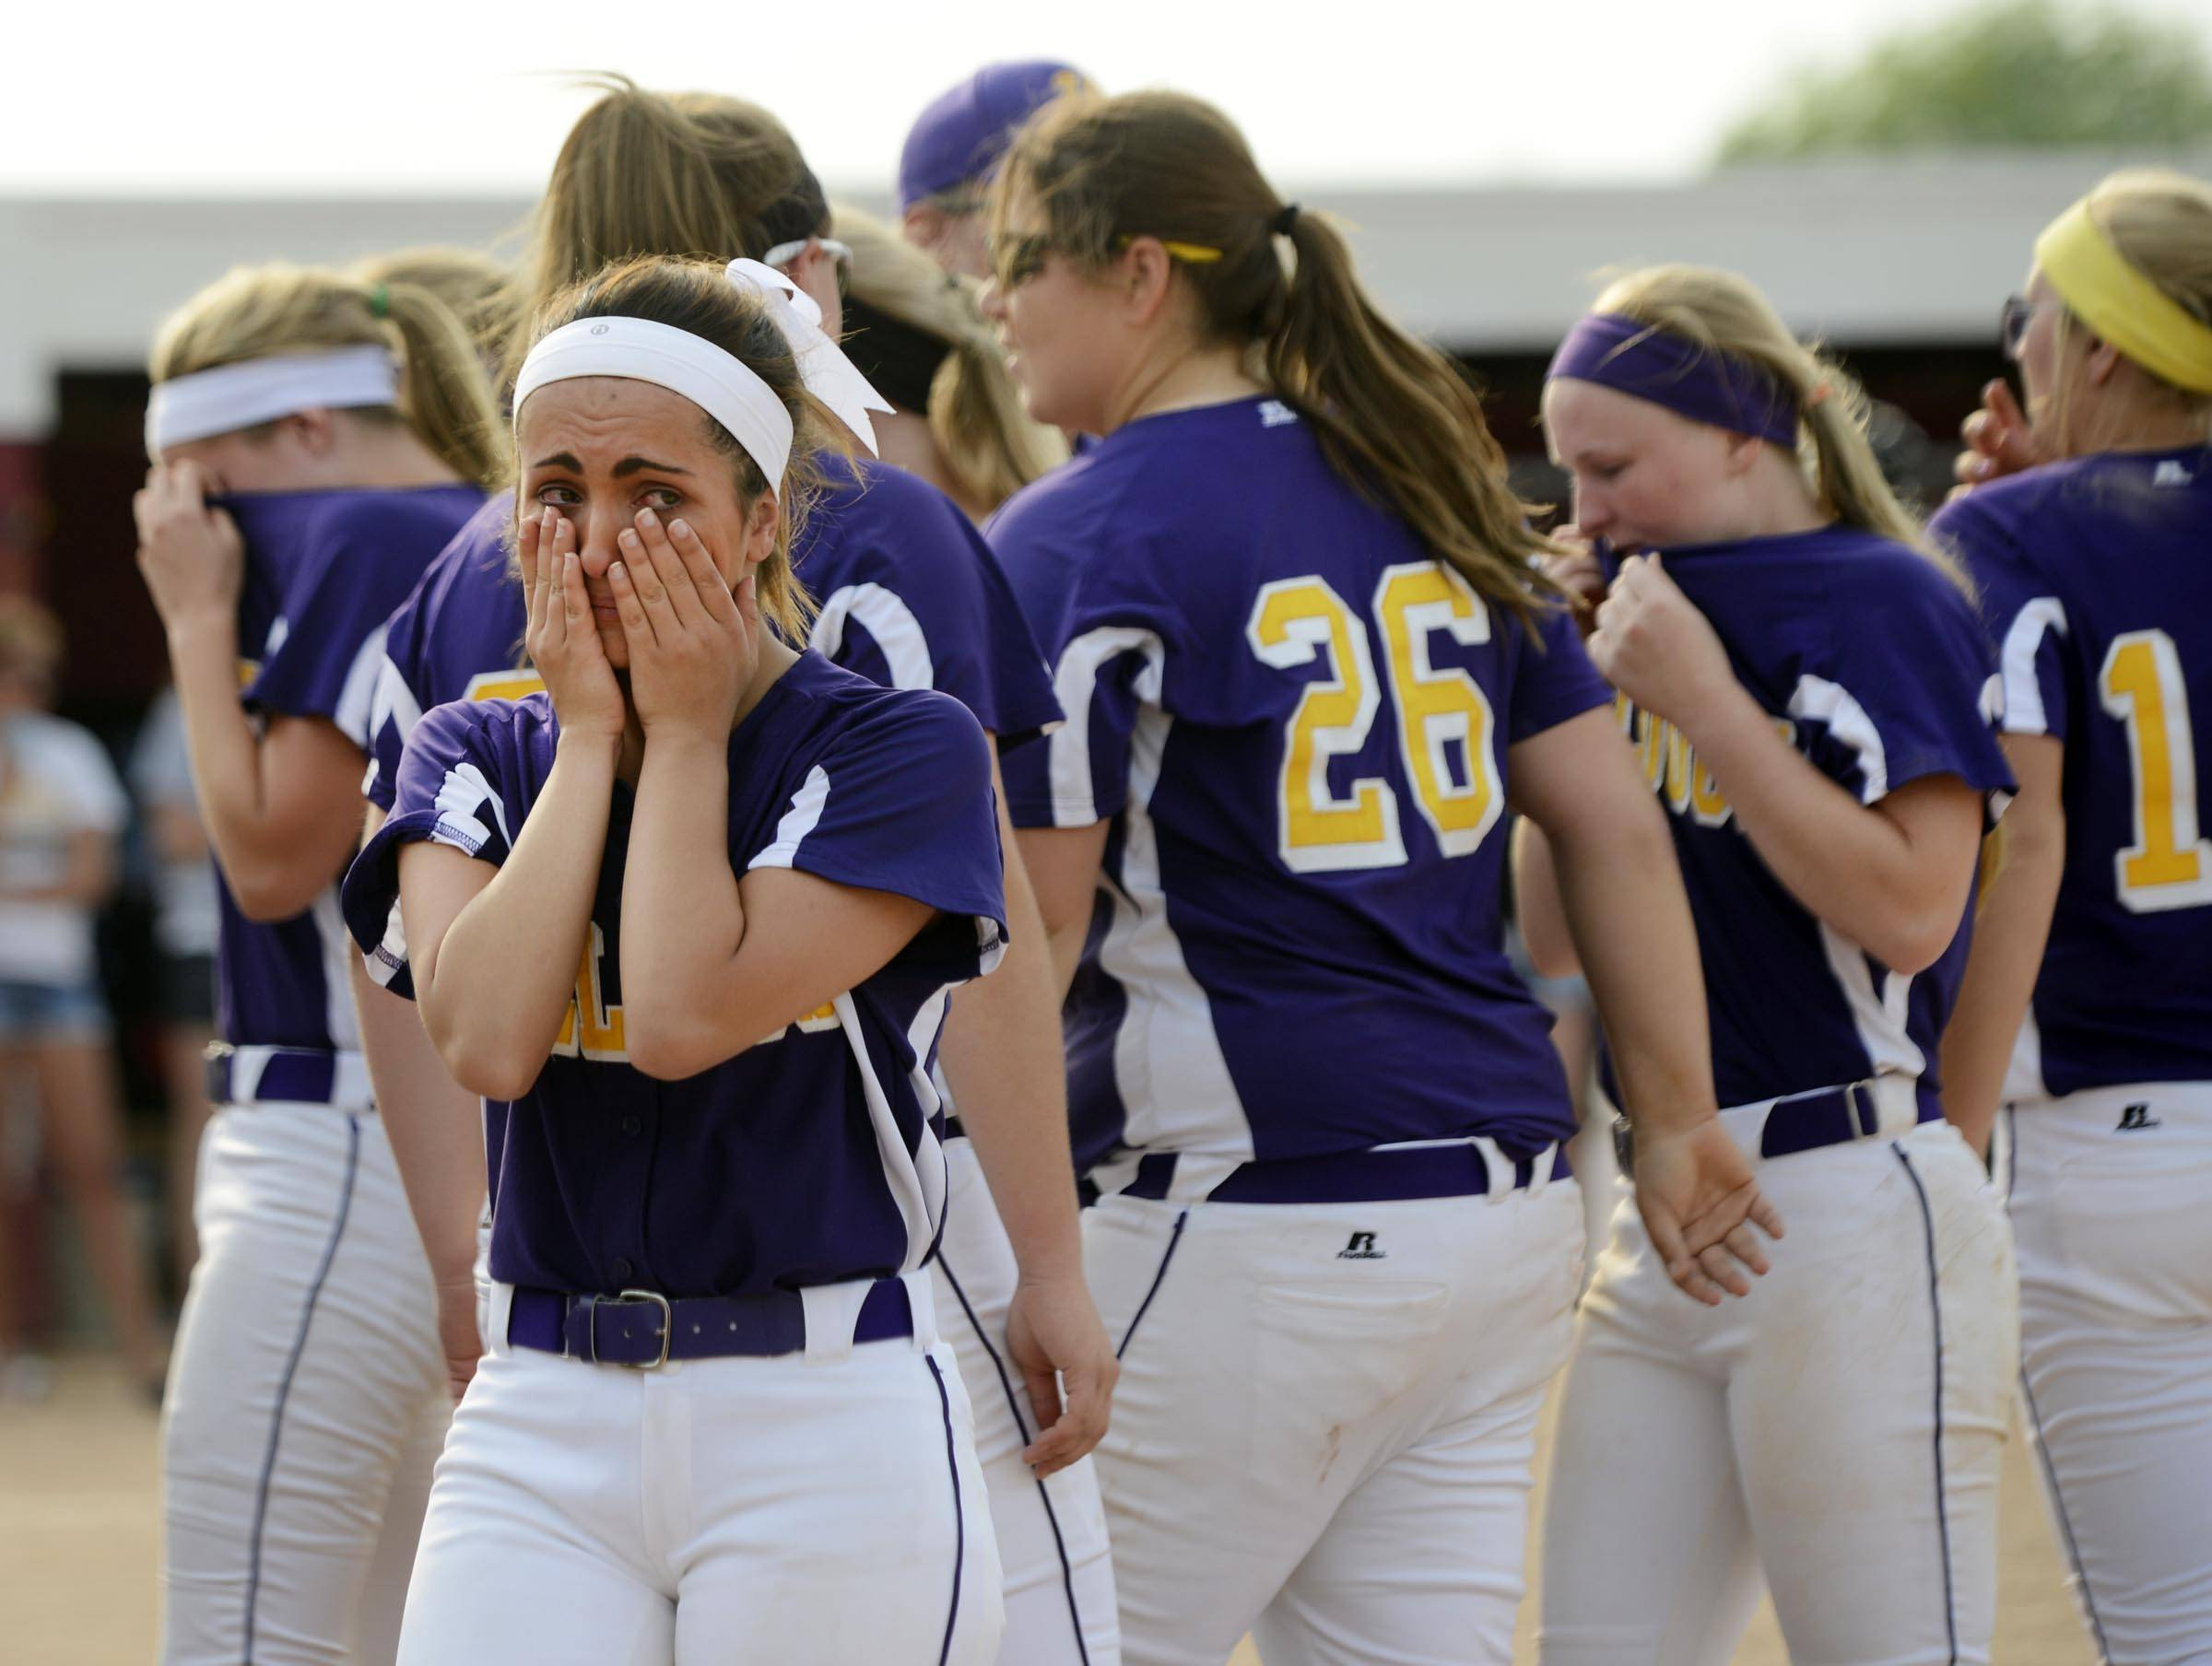 Wauconda's Marissa Honeyman wipes her eyes as the team leaves the field after losing to Sterling in the Class 3A Barrington supersectional Monday.